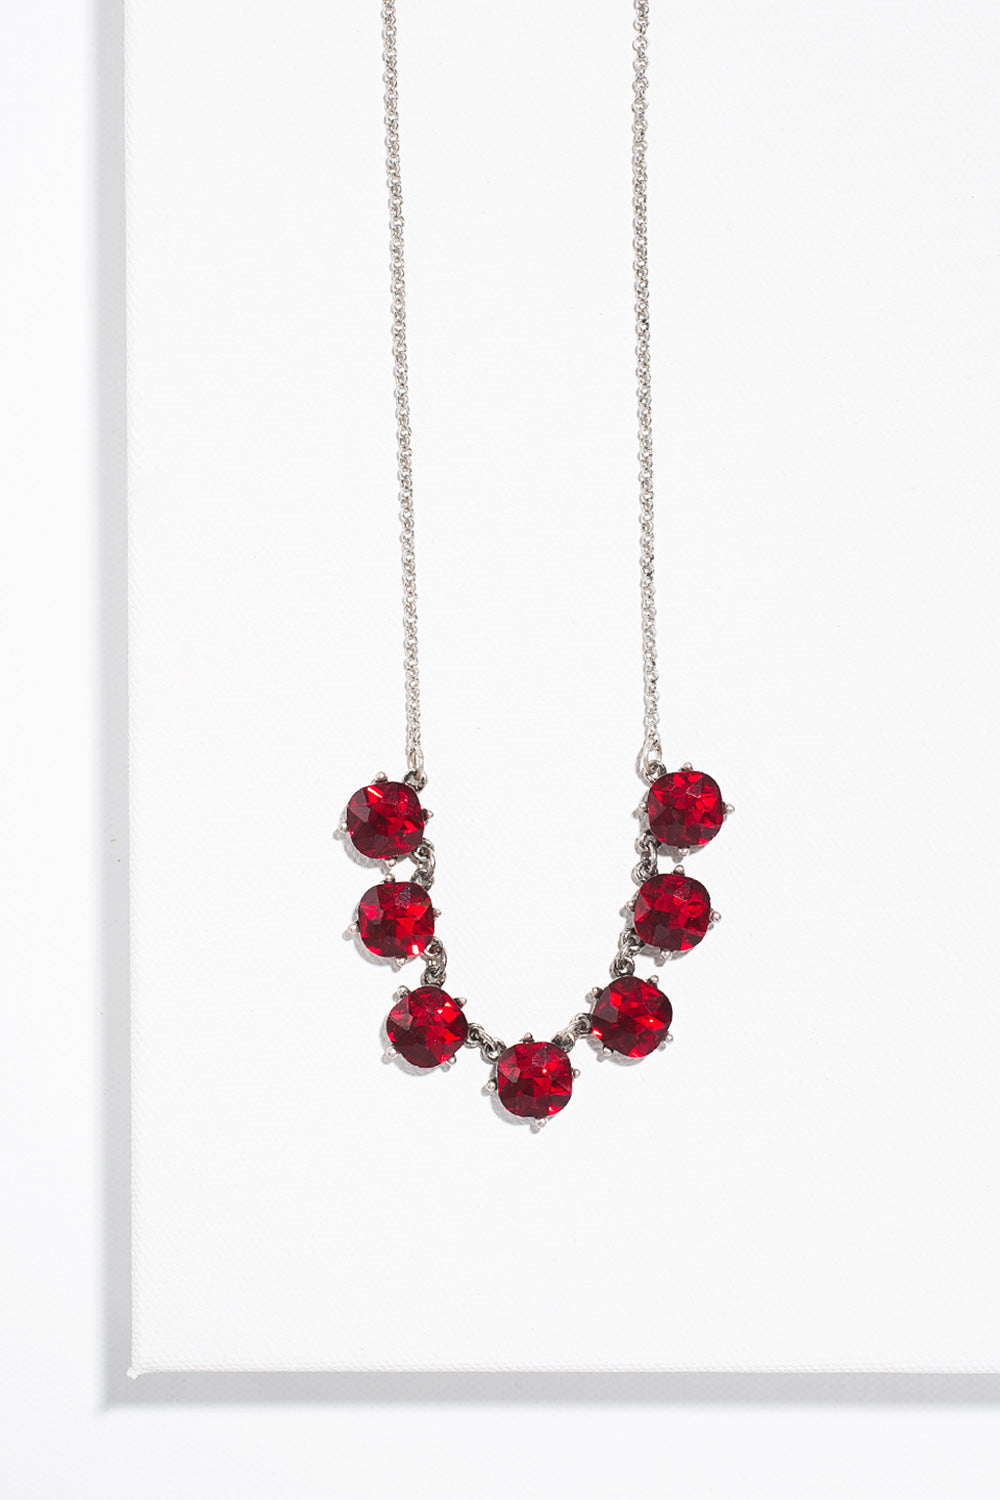 Type 4 Antique Rubies Necklace